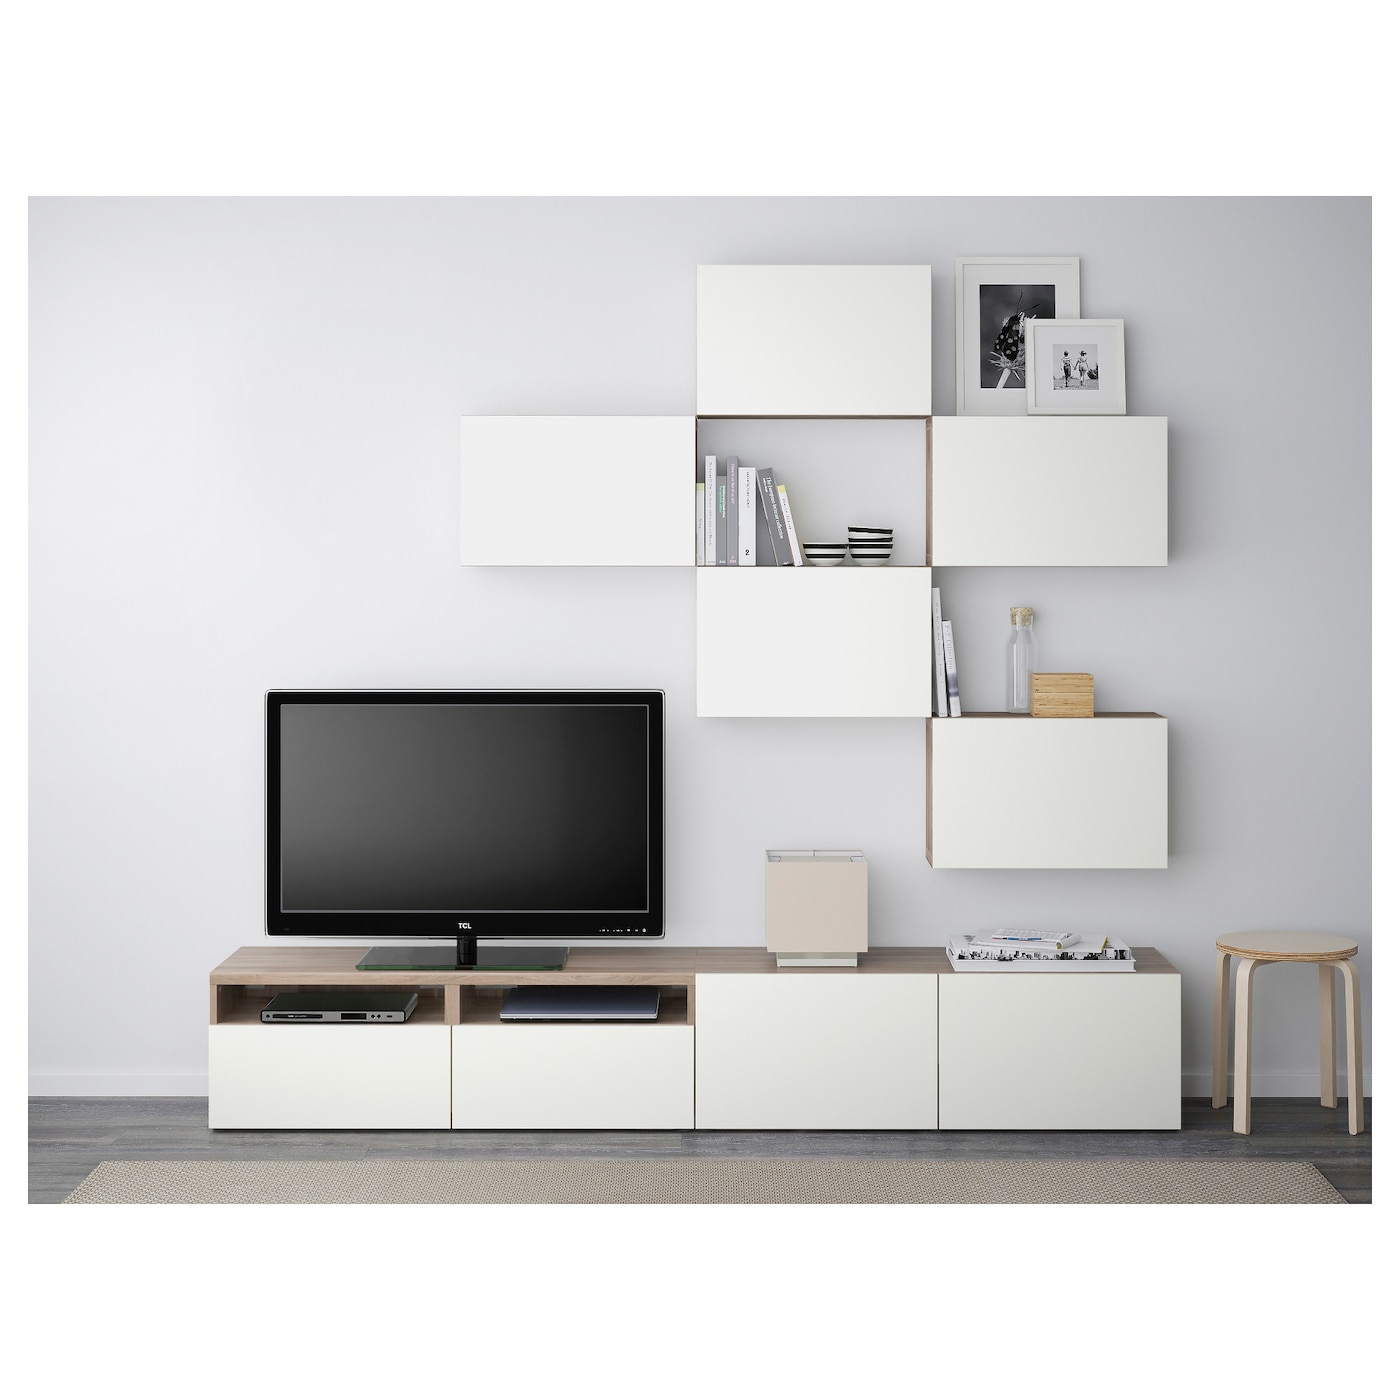 best combinaison meuble tv motif noyer teint gris lappviken blanc 240x20 40x204 cm ikea. Black Bedroom Furniture Sets. Home Design Ideas